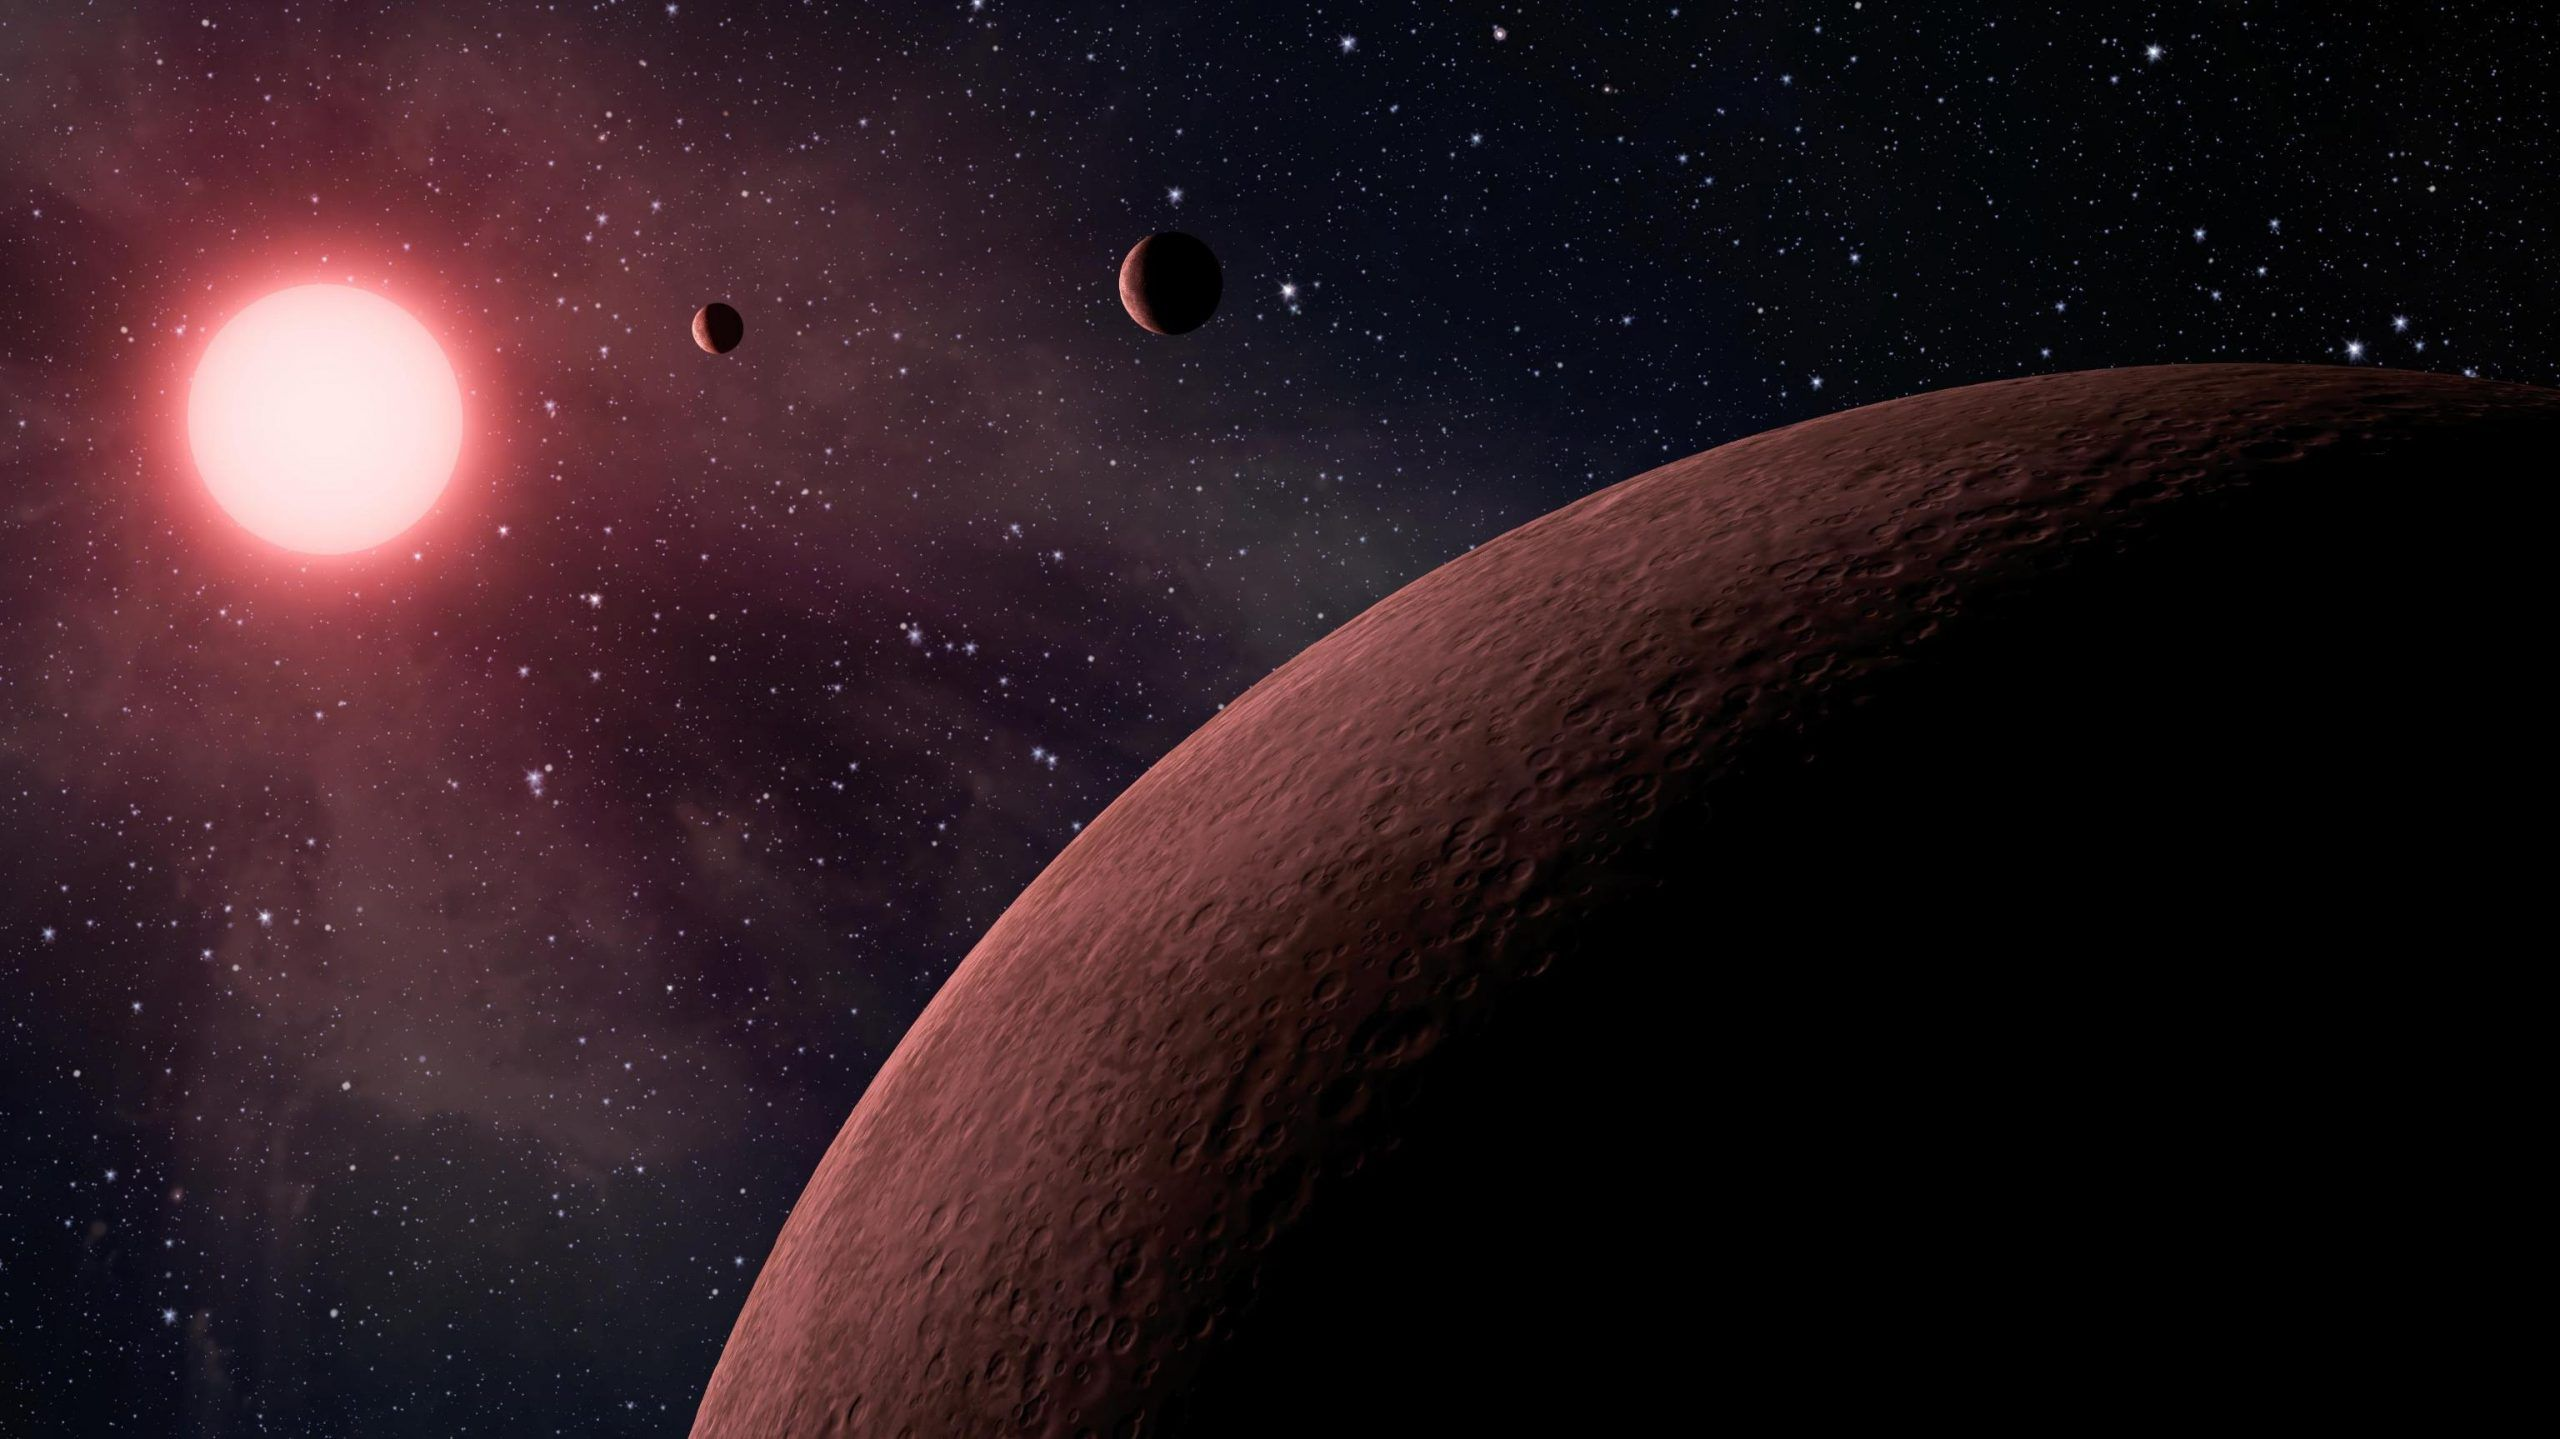 NASA's Kepler space telescope team identify 10 near Earth size planets in the habitable zone of their star